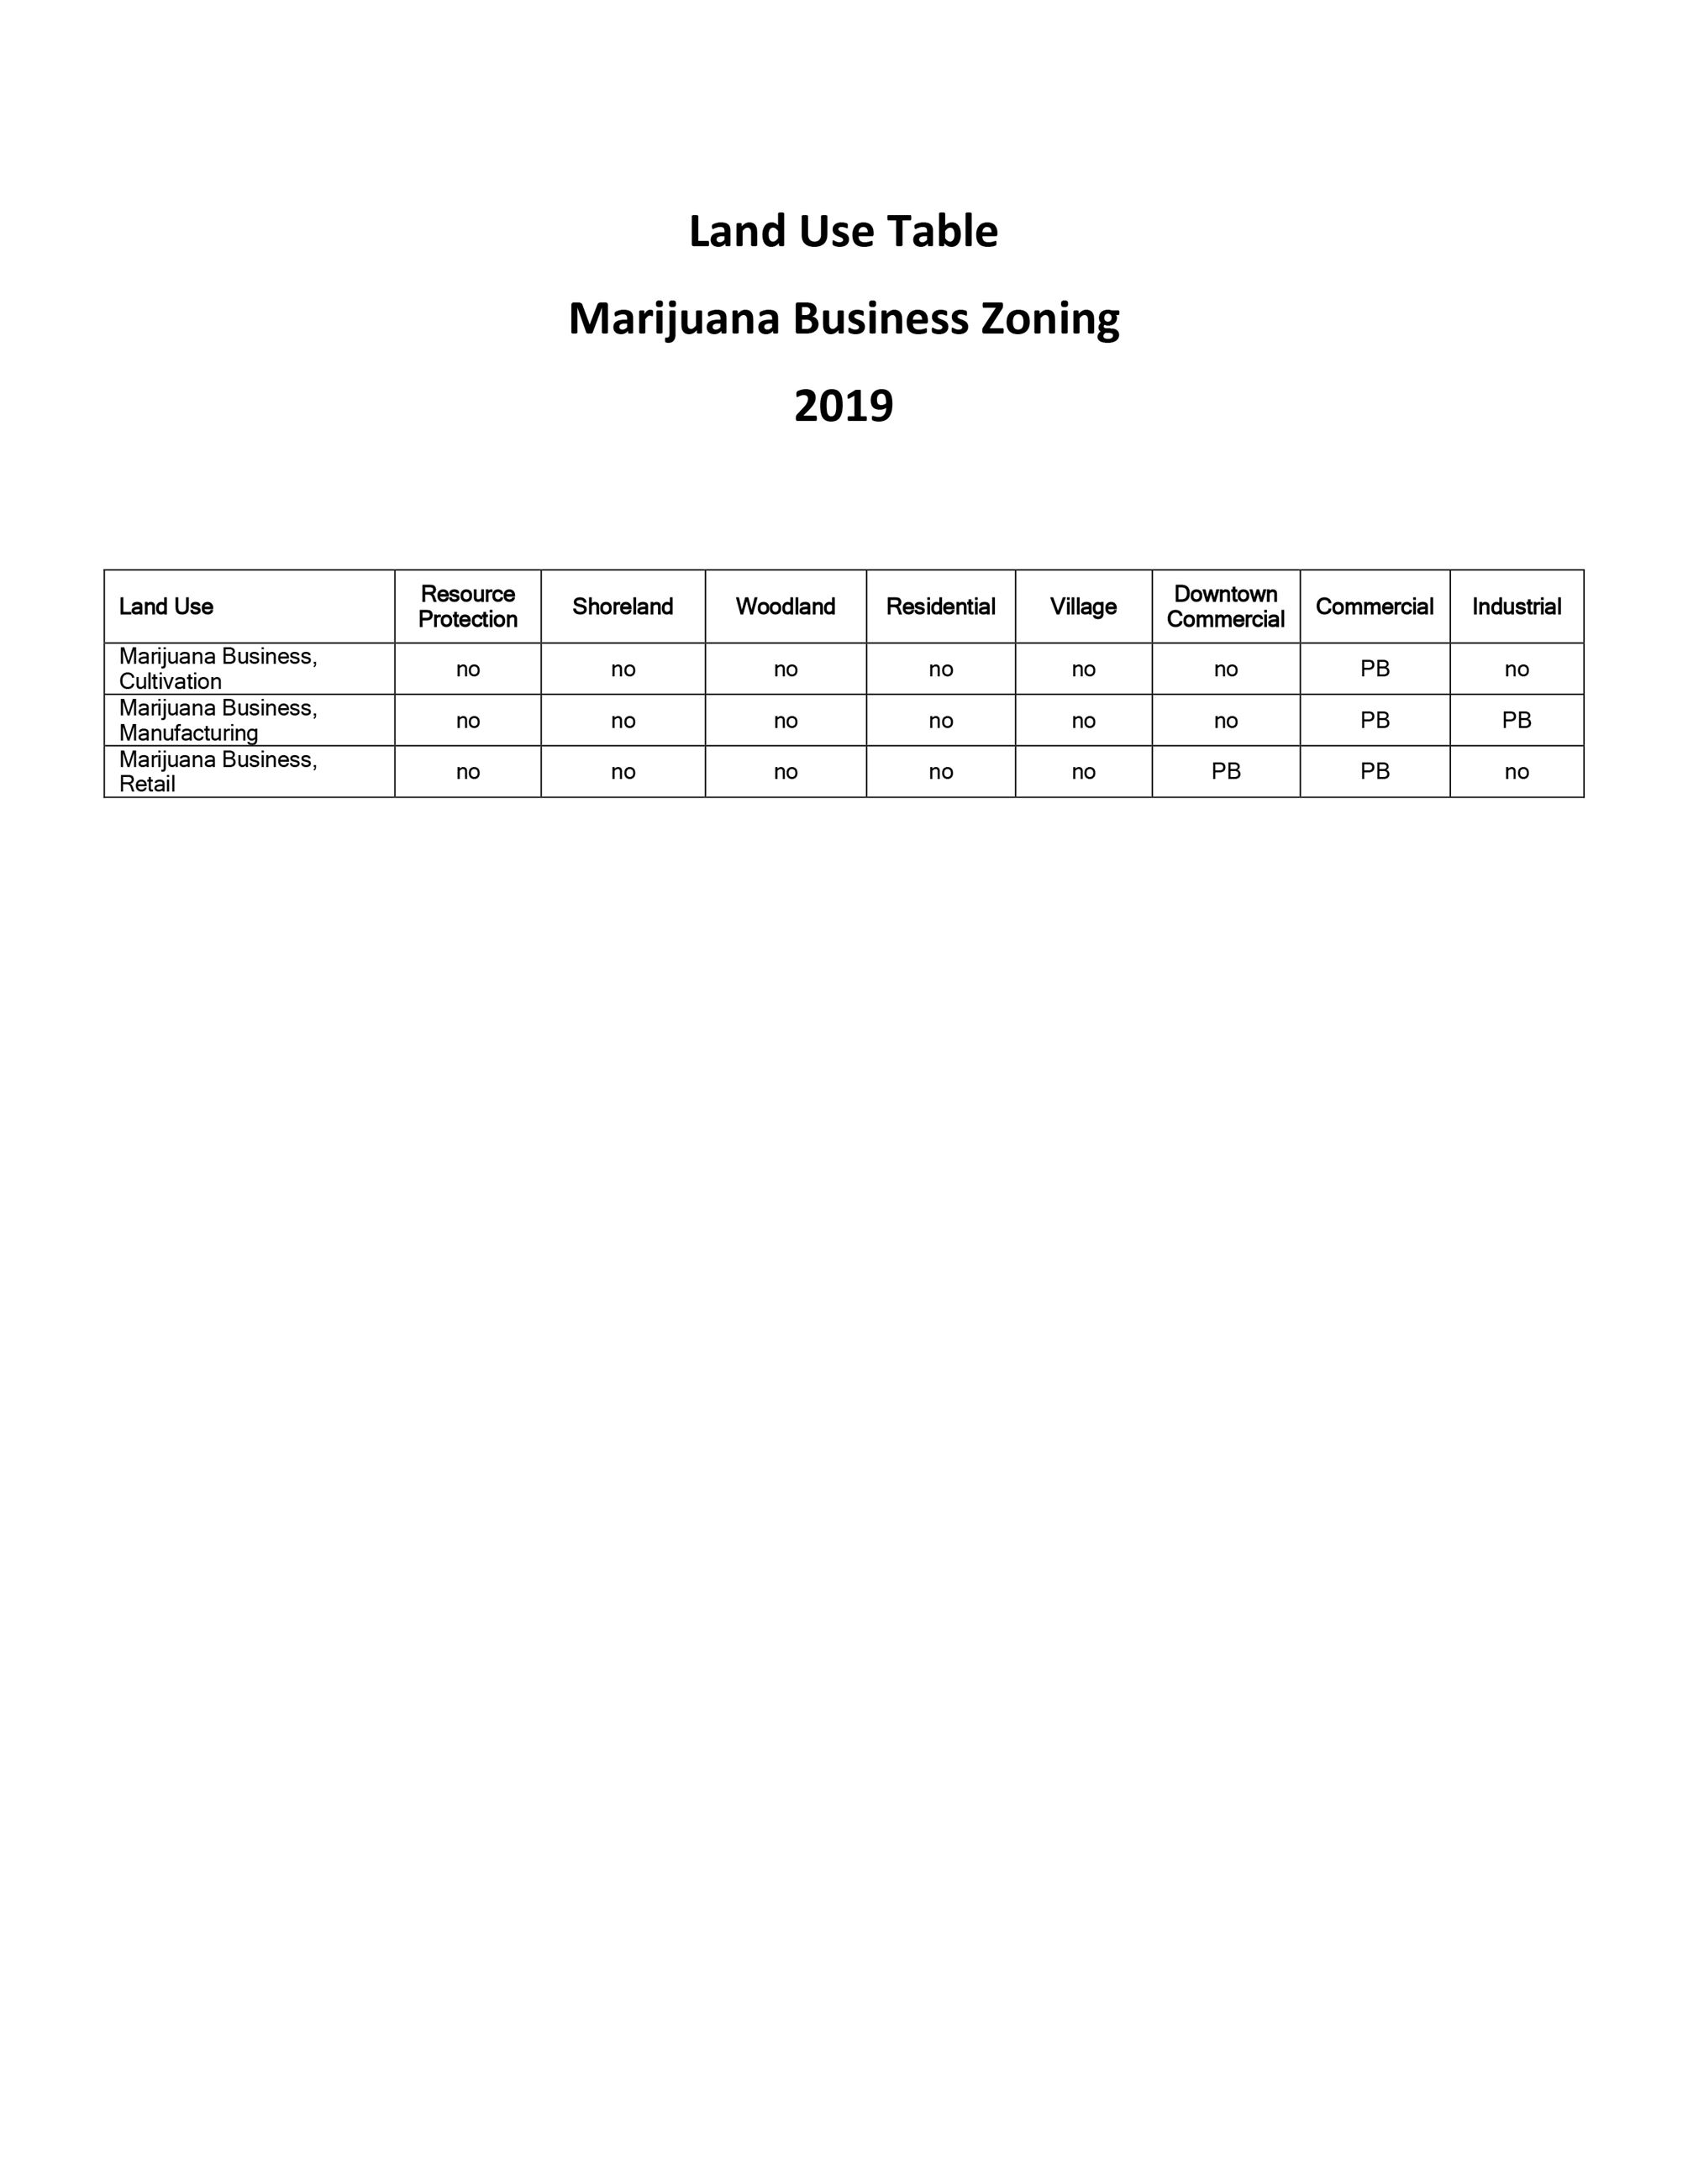 Land Use Table Marijuana Business zoning 2019 draft